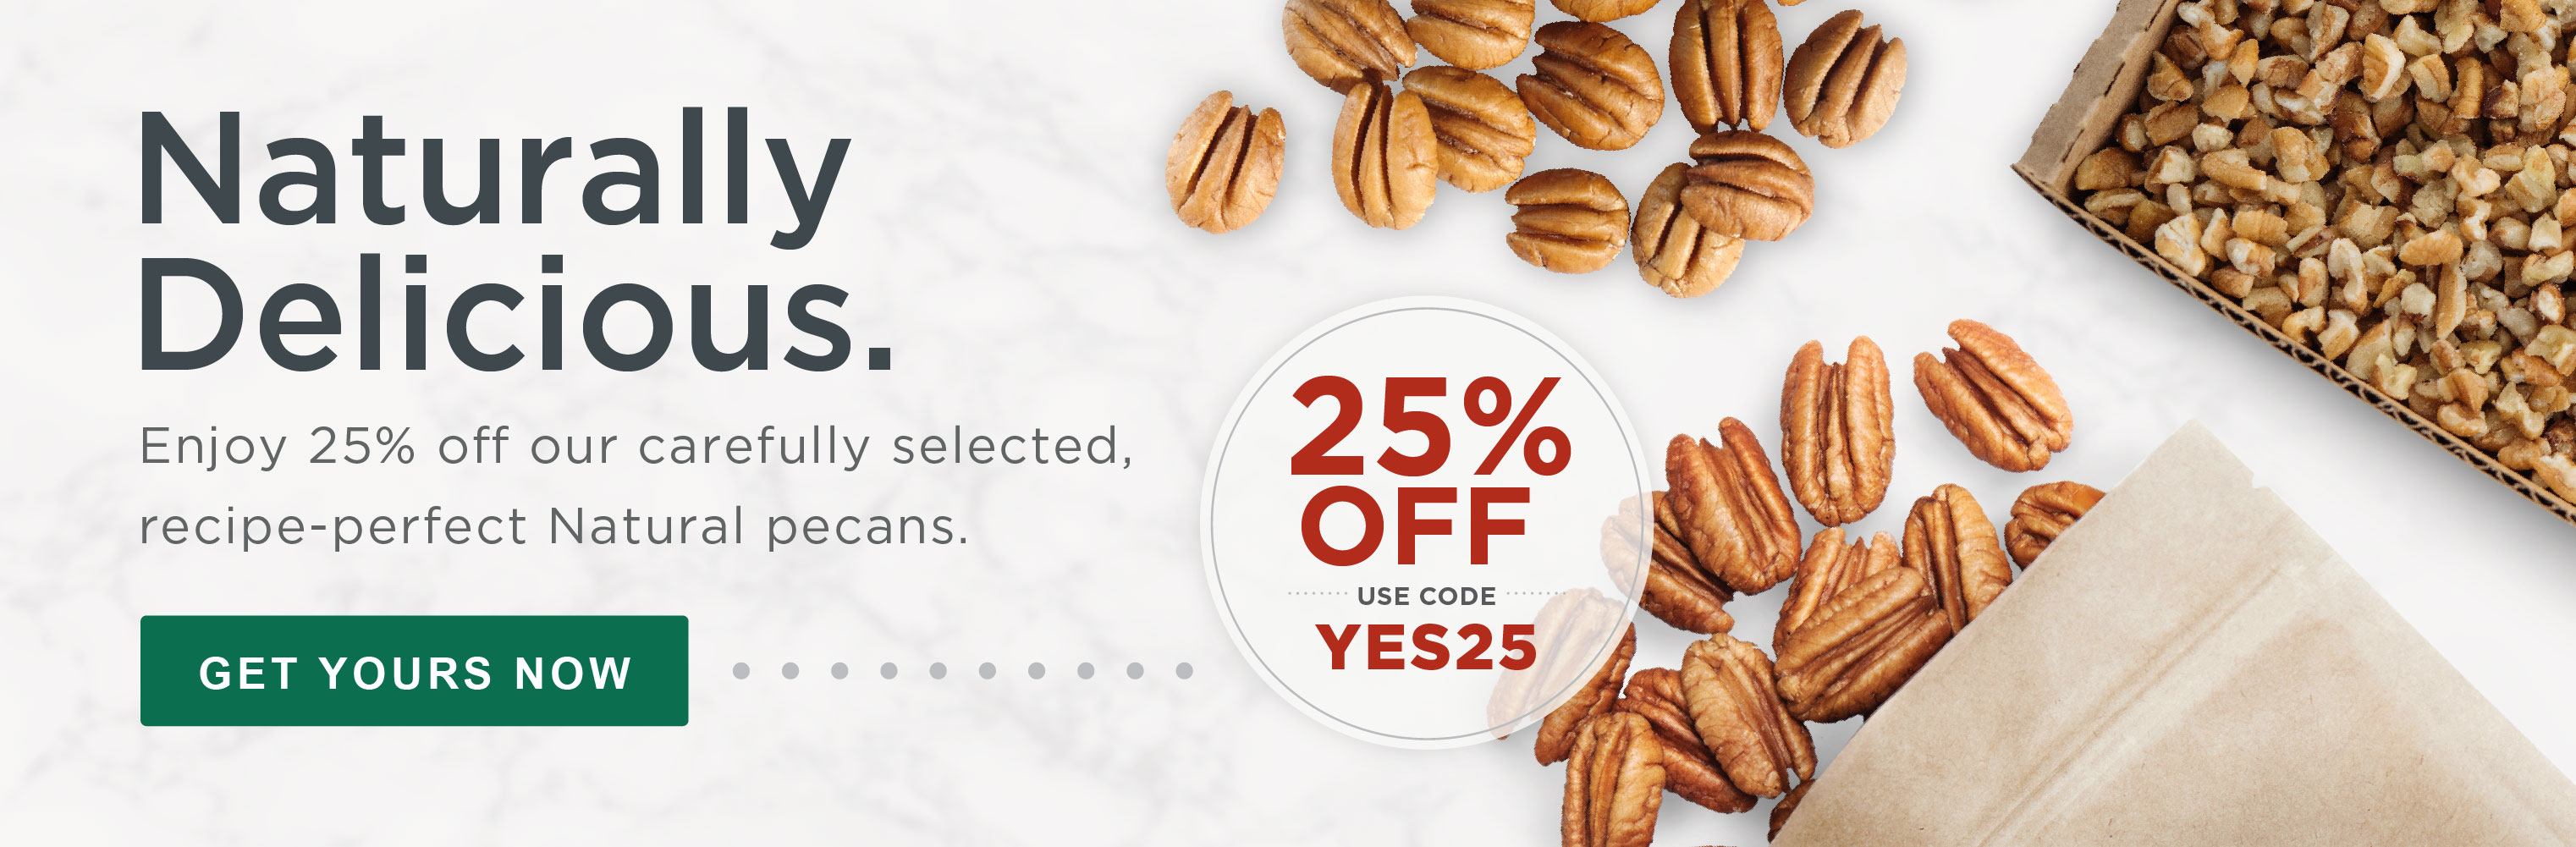 Naturally Delicious.